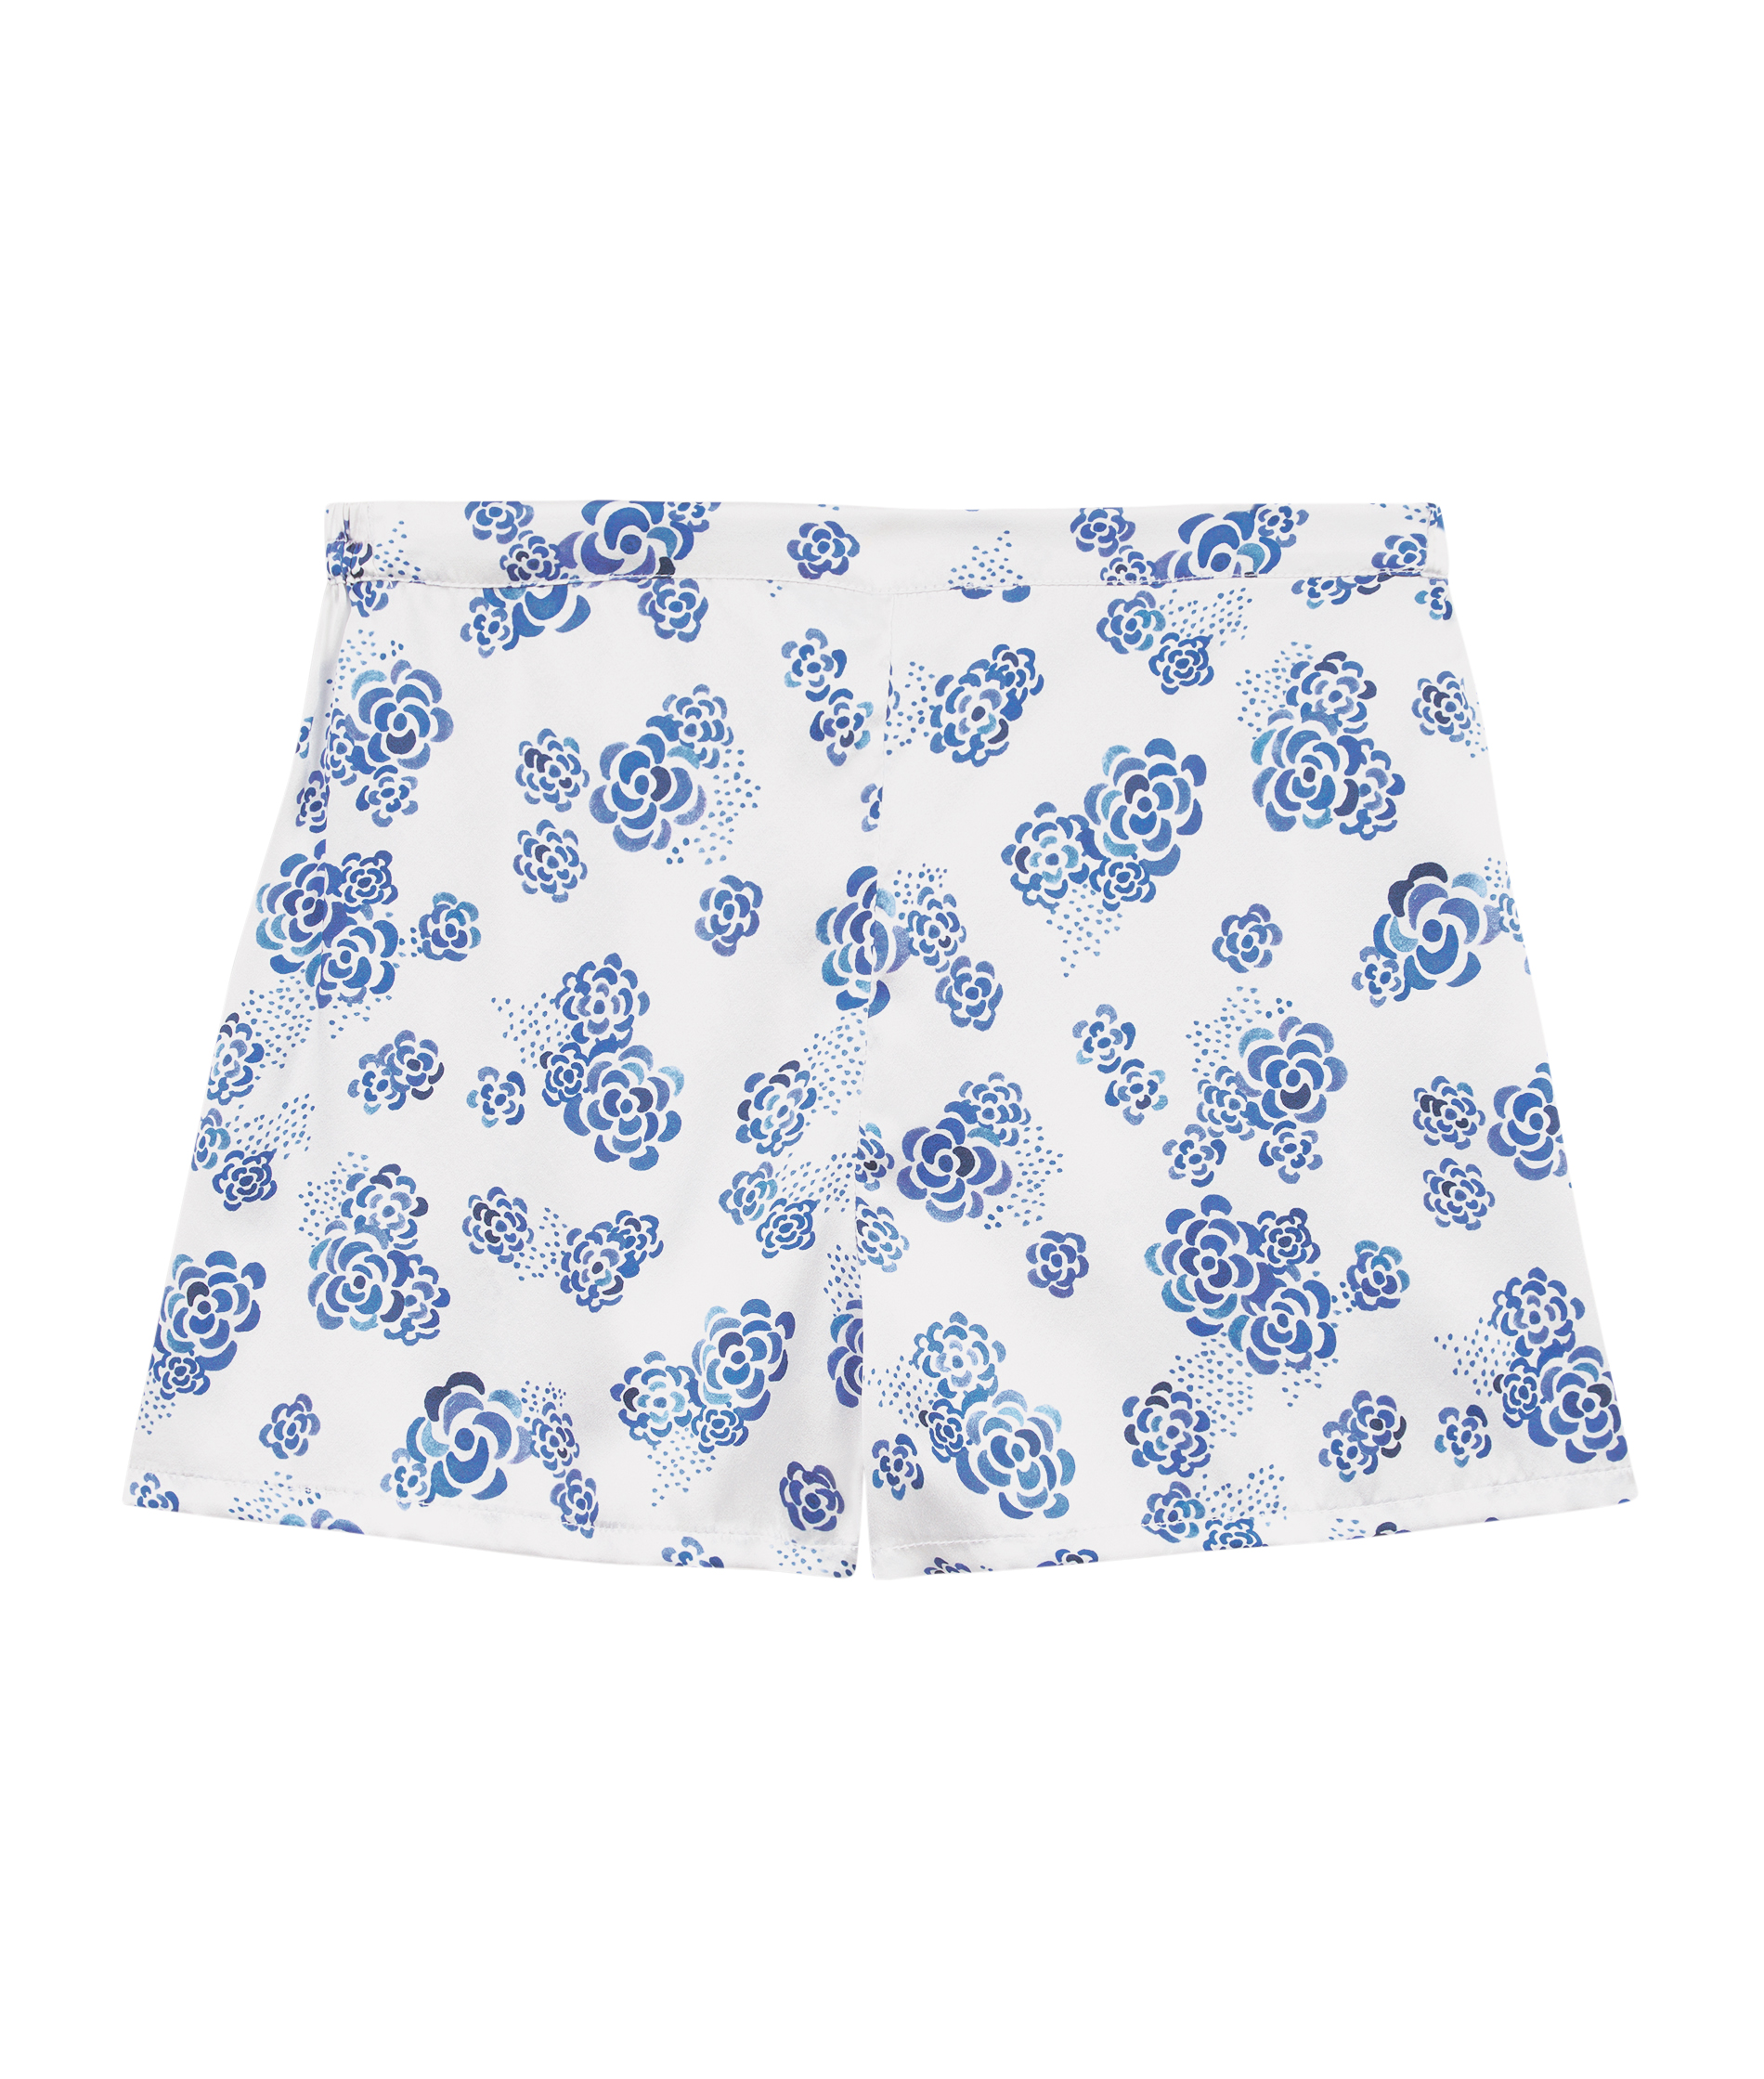 496611bc Luxury Ladies White, Blue Floral Silk Pyjama Shorts UK, Ditsy Lotus ...